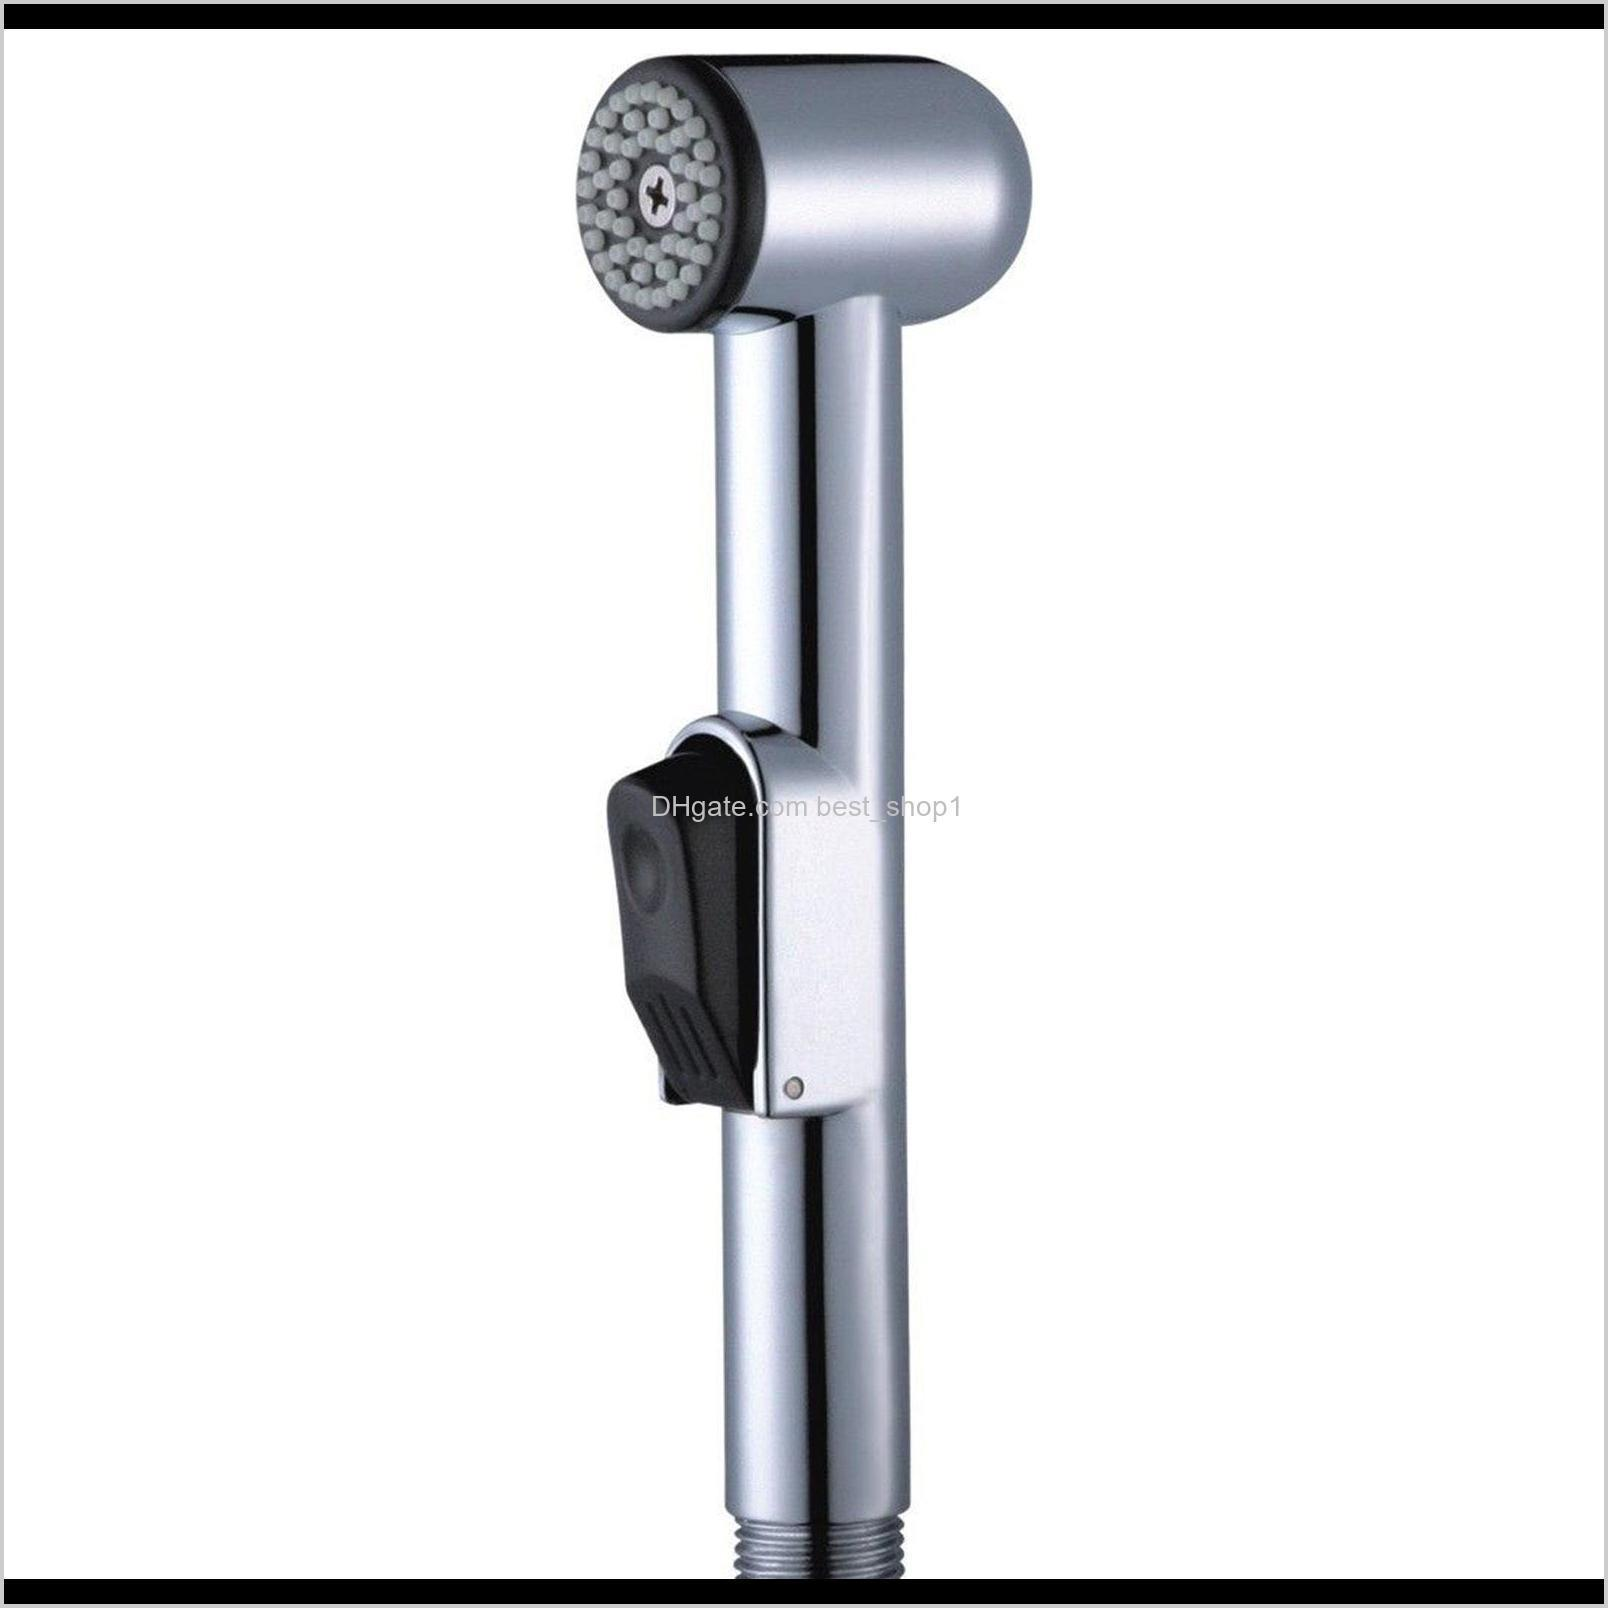 bathroom toilet abs bidet sprayer single head hand held chrome douche shattaf diaper wash spray shower nozzle g1/2